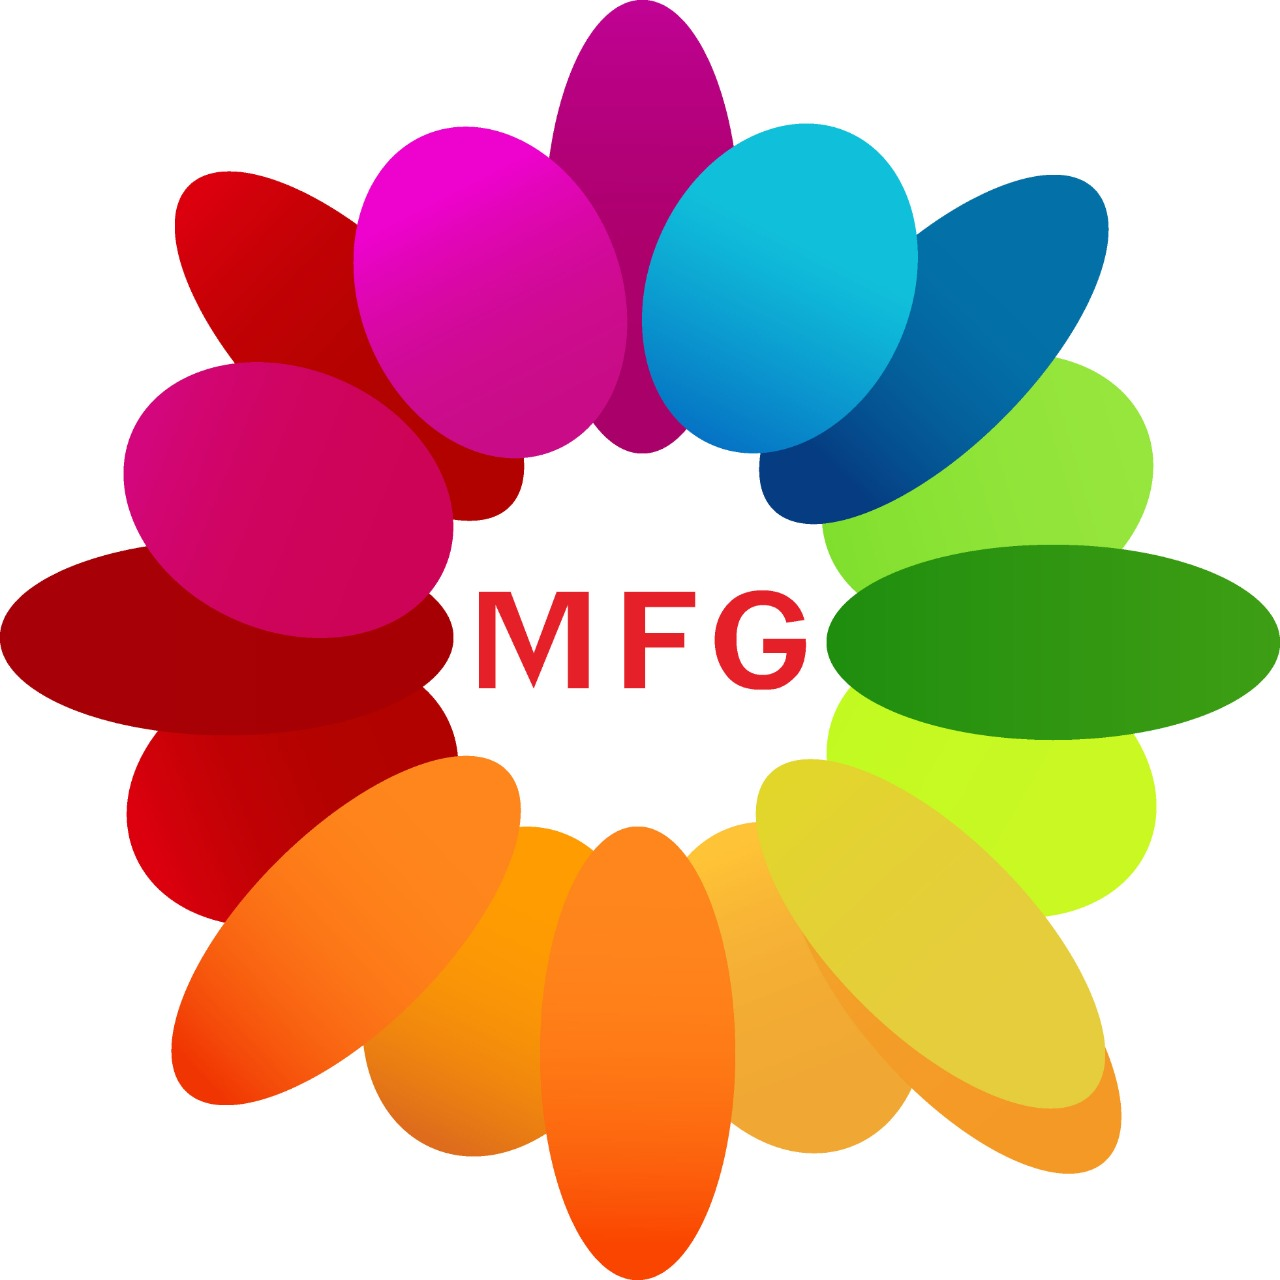 Bunch of white lilies and red anthuriums